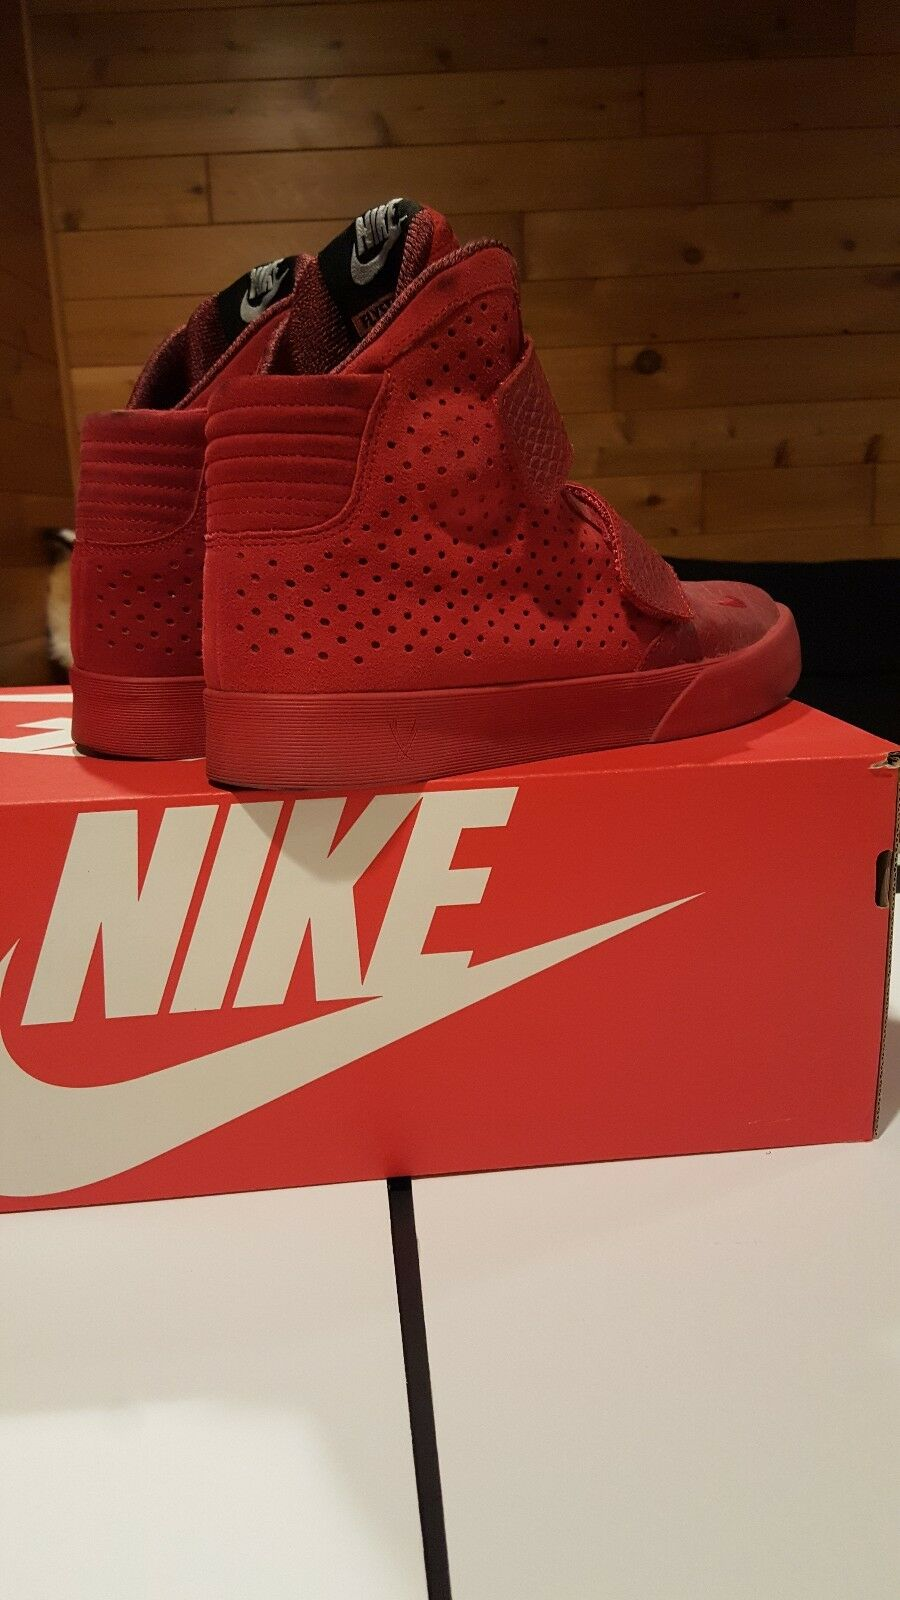 Nike-Flystepper 2K3 PRM  Cheap and fashionable